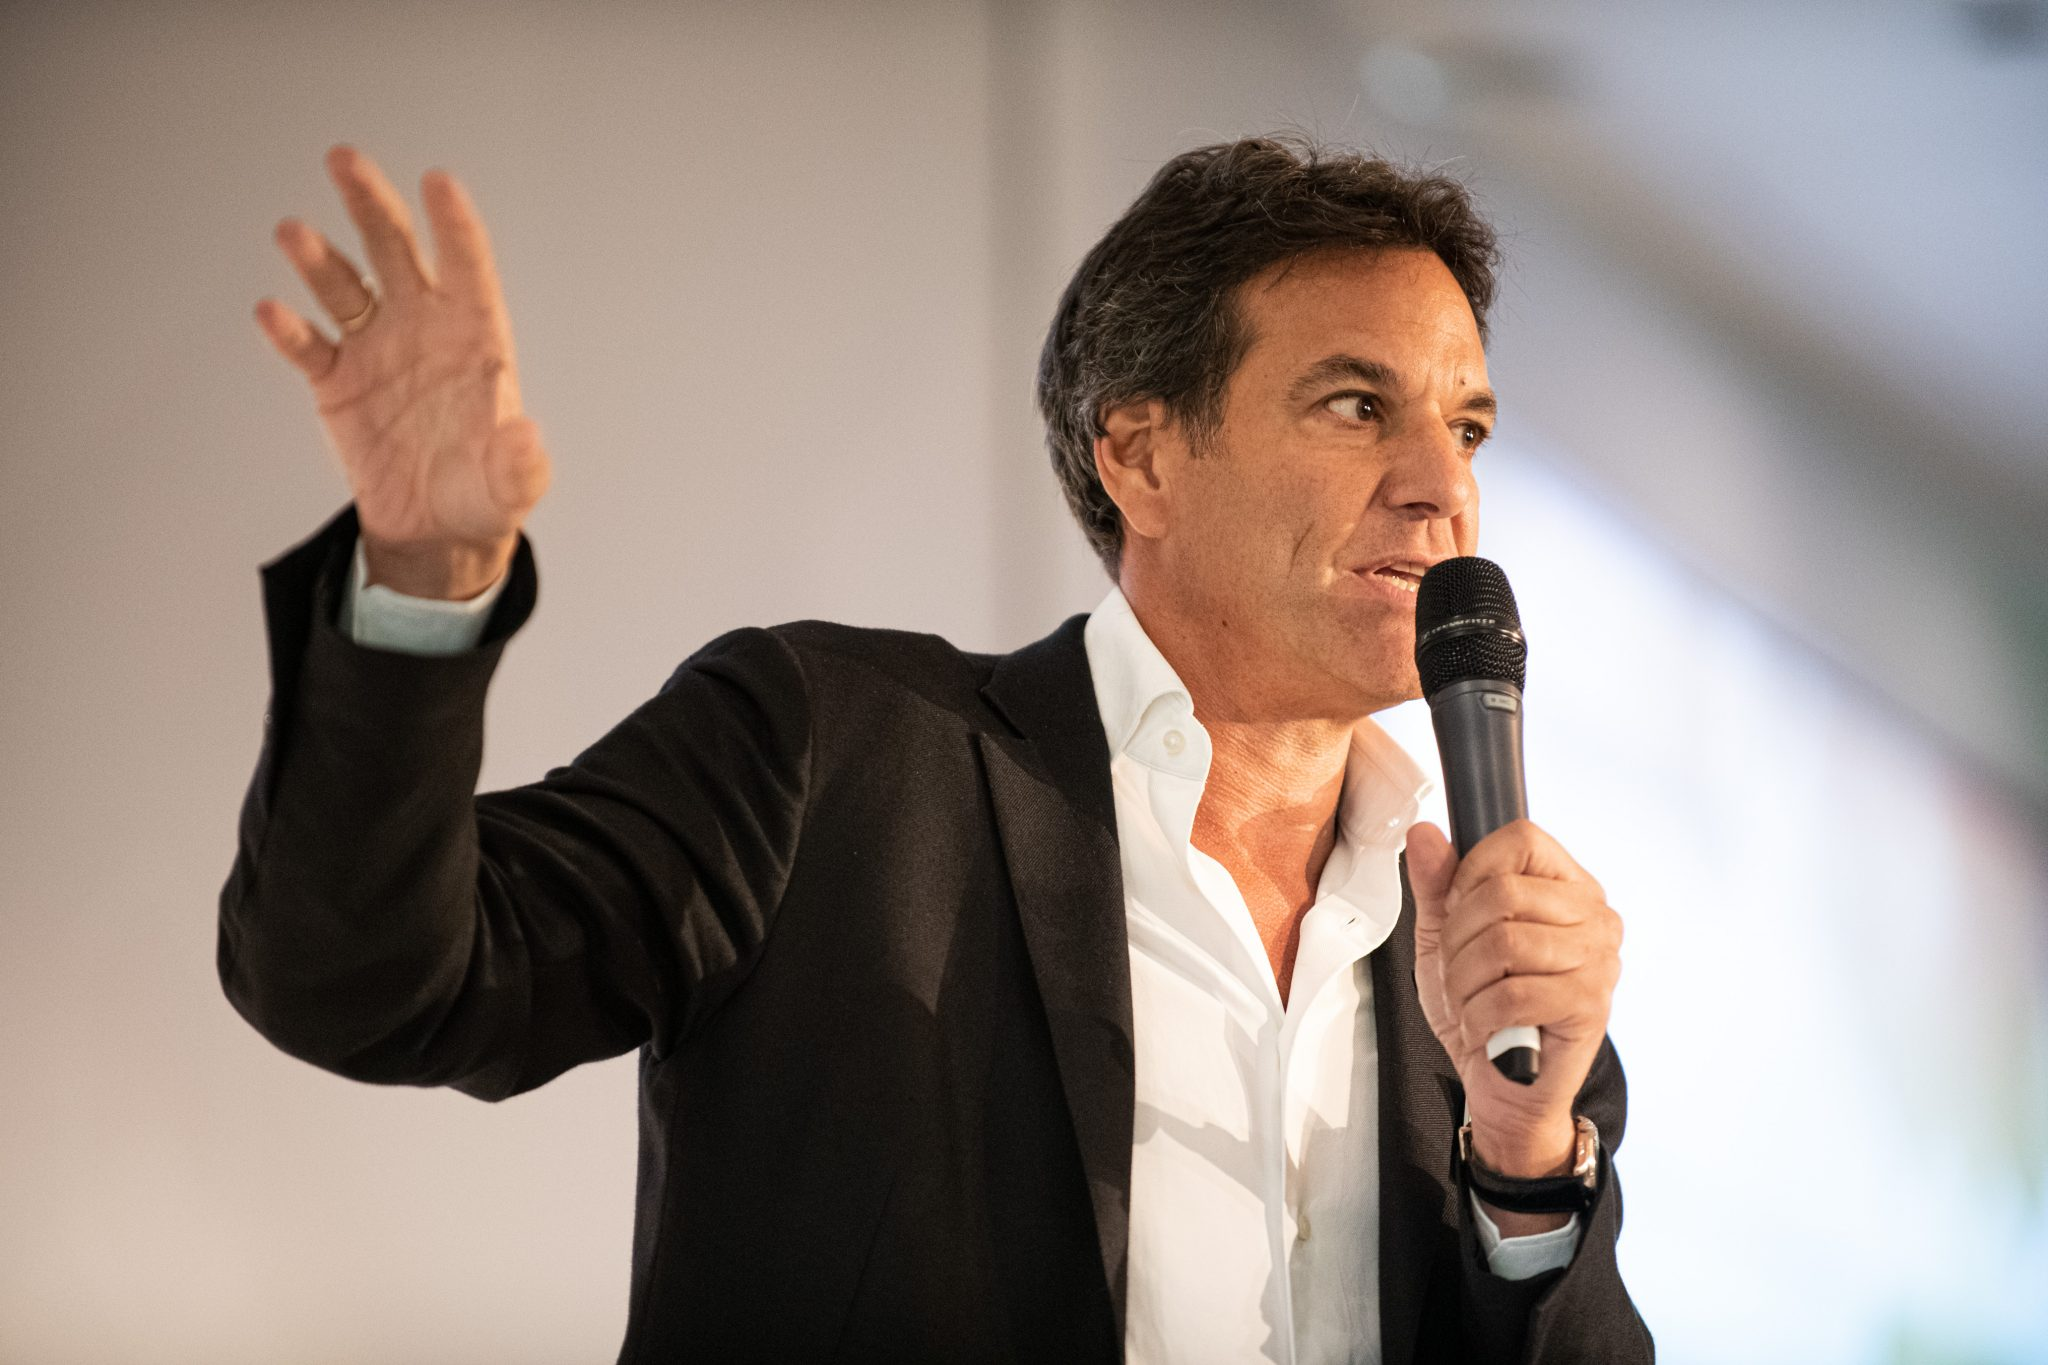 Brent Hoberman, cofounder and executive chairman at Founders Factory, Founders Forum and firstminute capital.